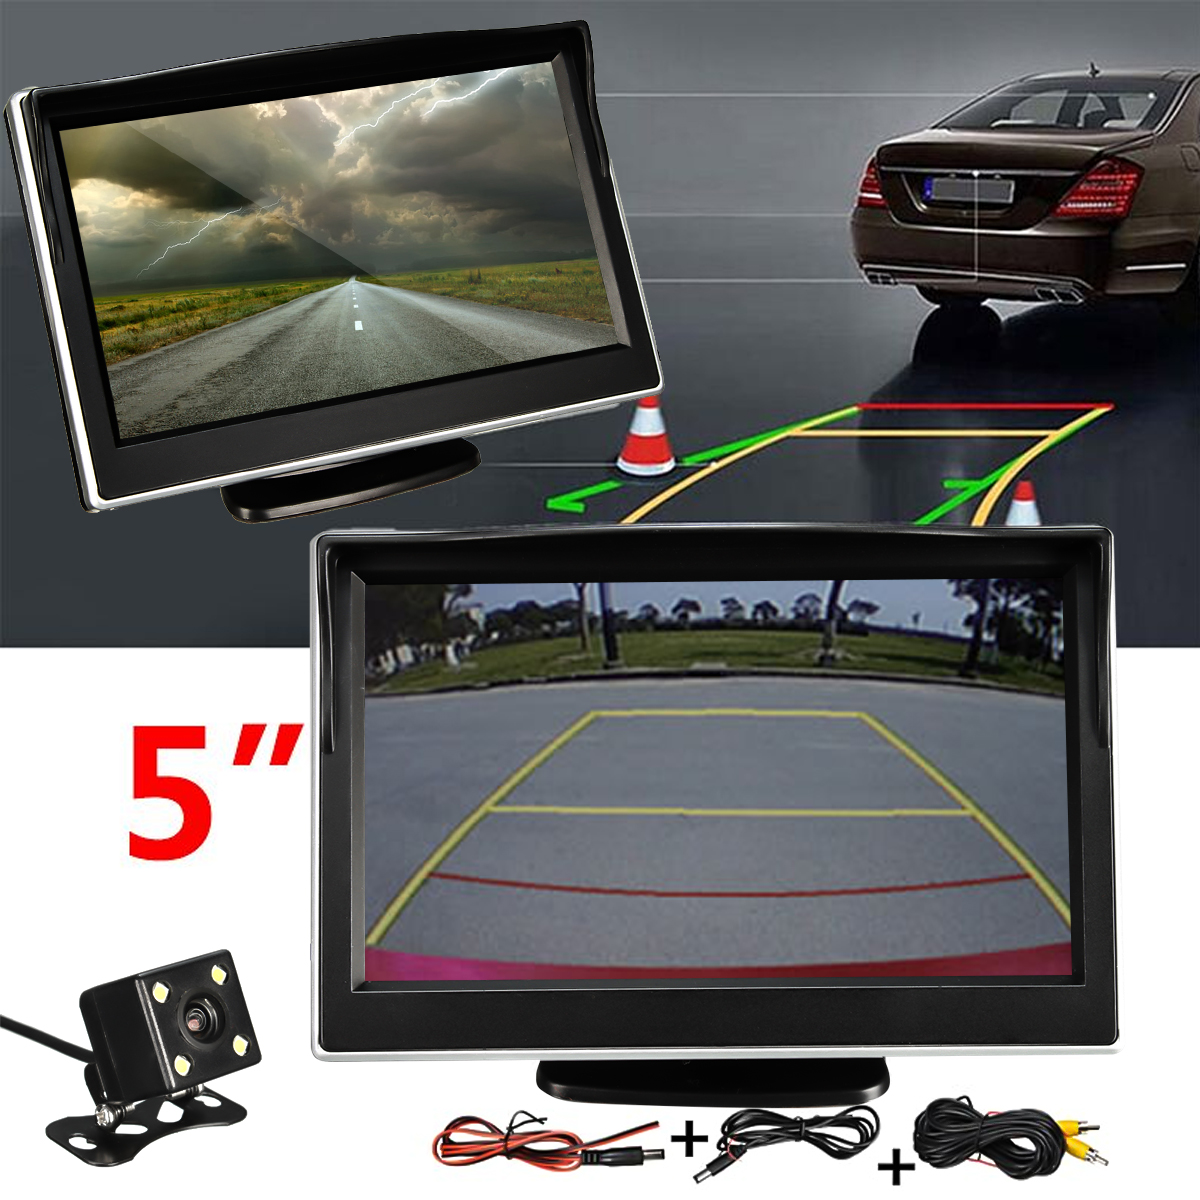 Waterproof Headrest Car Monitor 5 inch TFT LCD Display Auto Parking Rear View Backup Camera 170 Degree Reverse Cam Night Vision